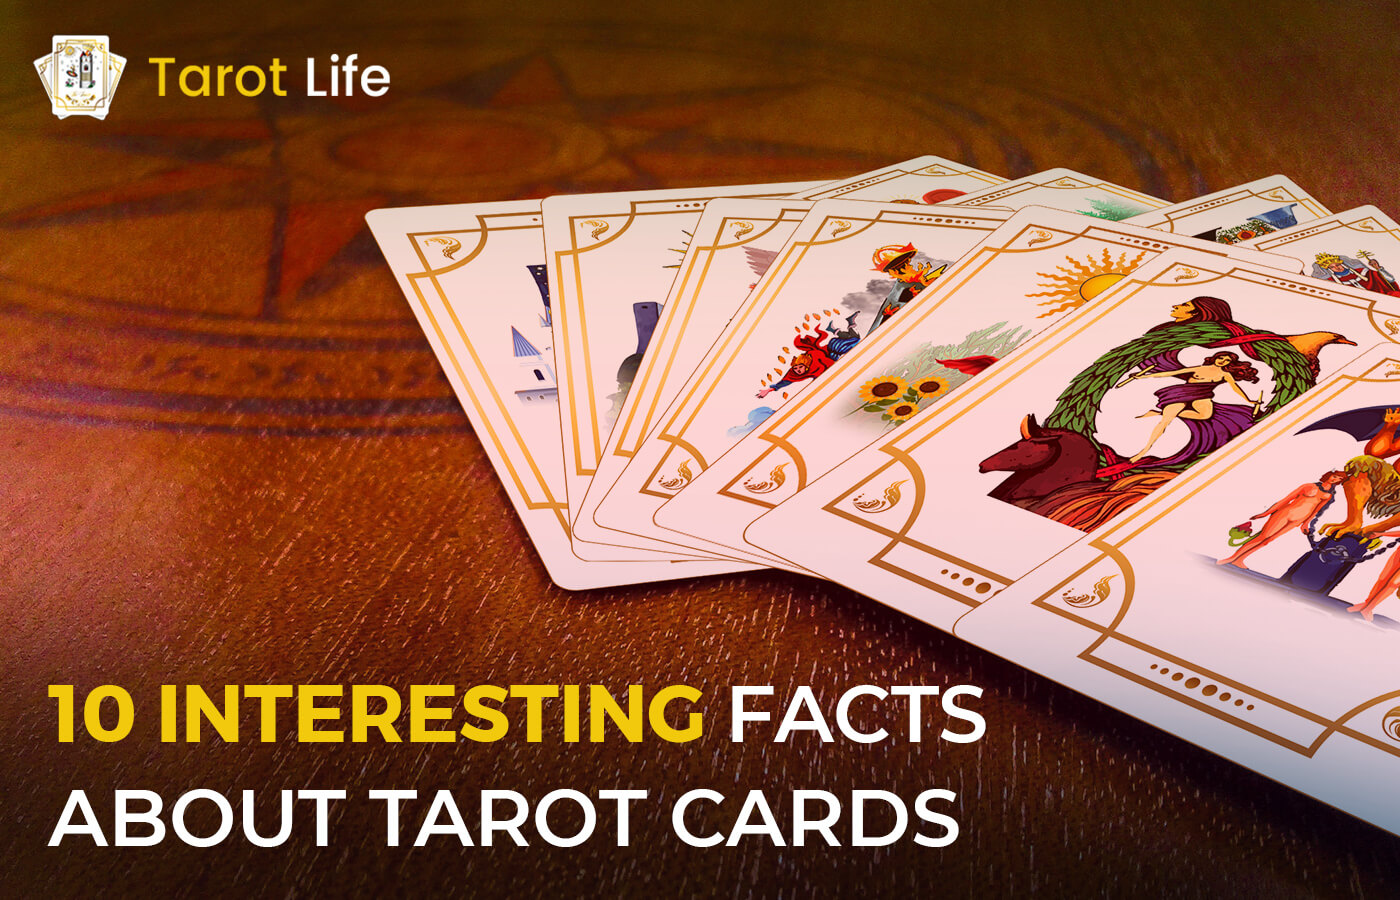 10 interesting facts about tarot cards